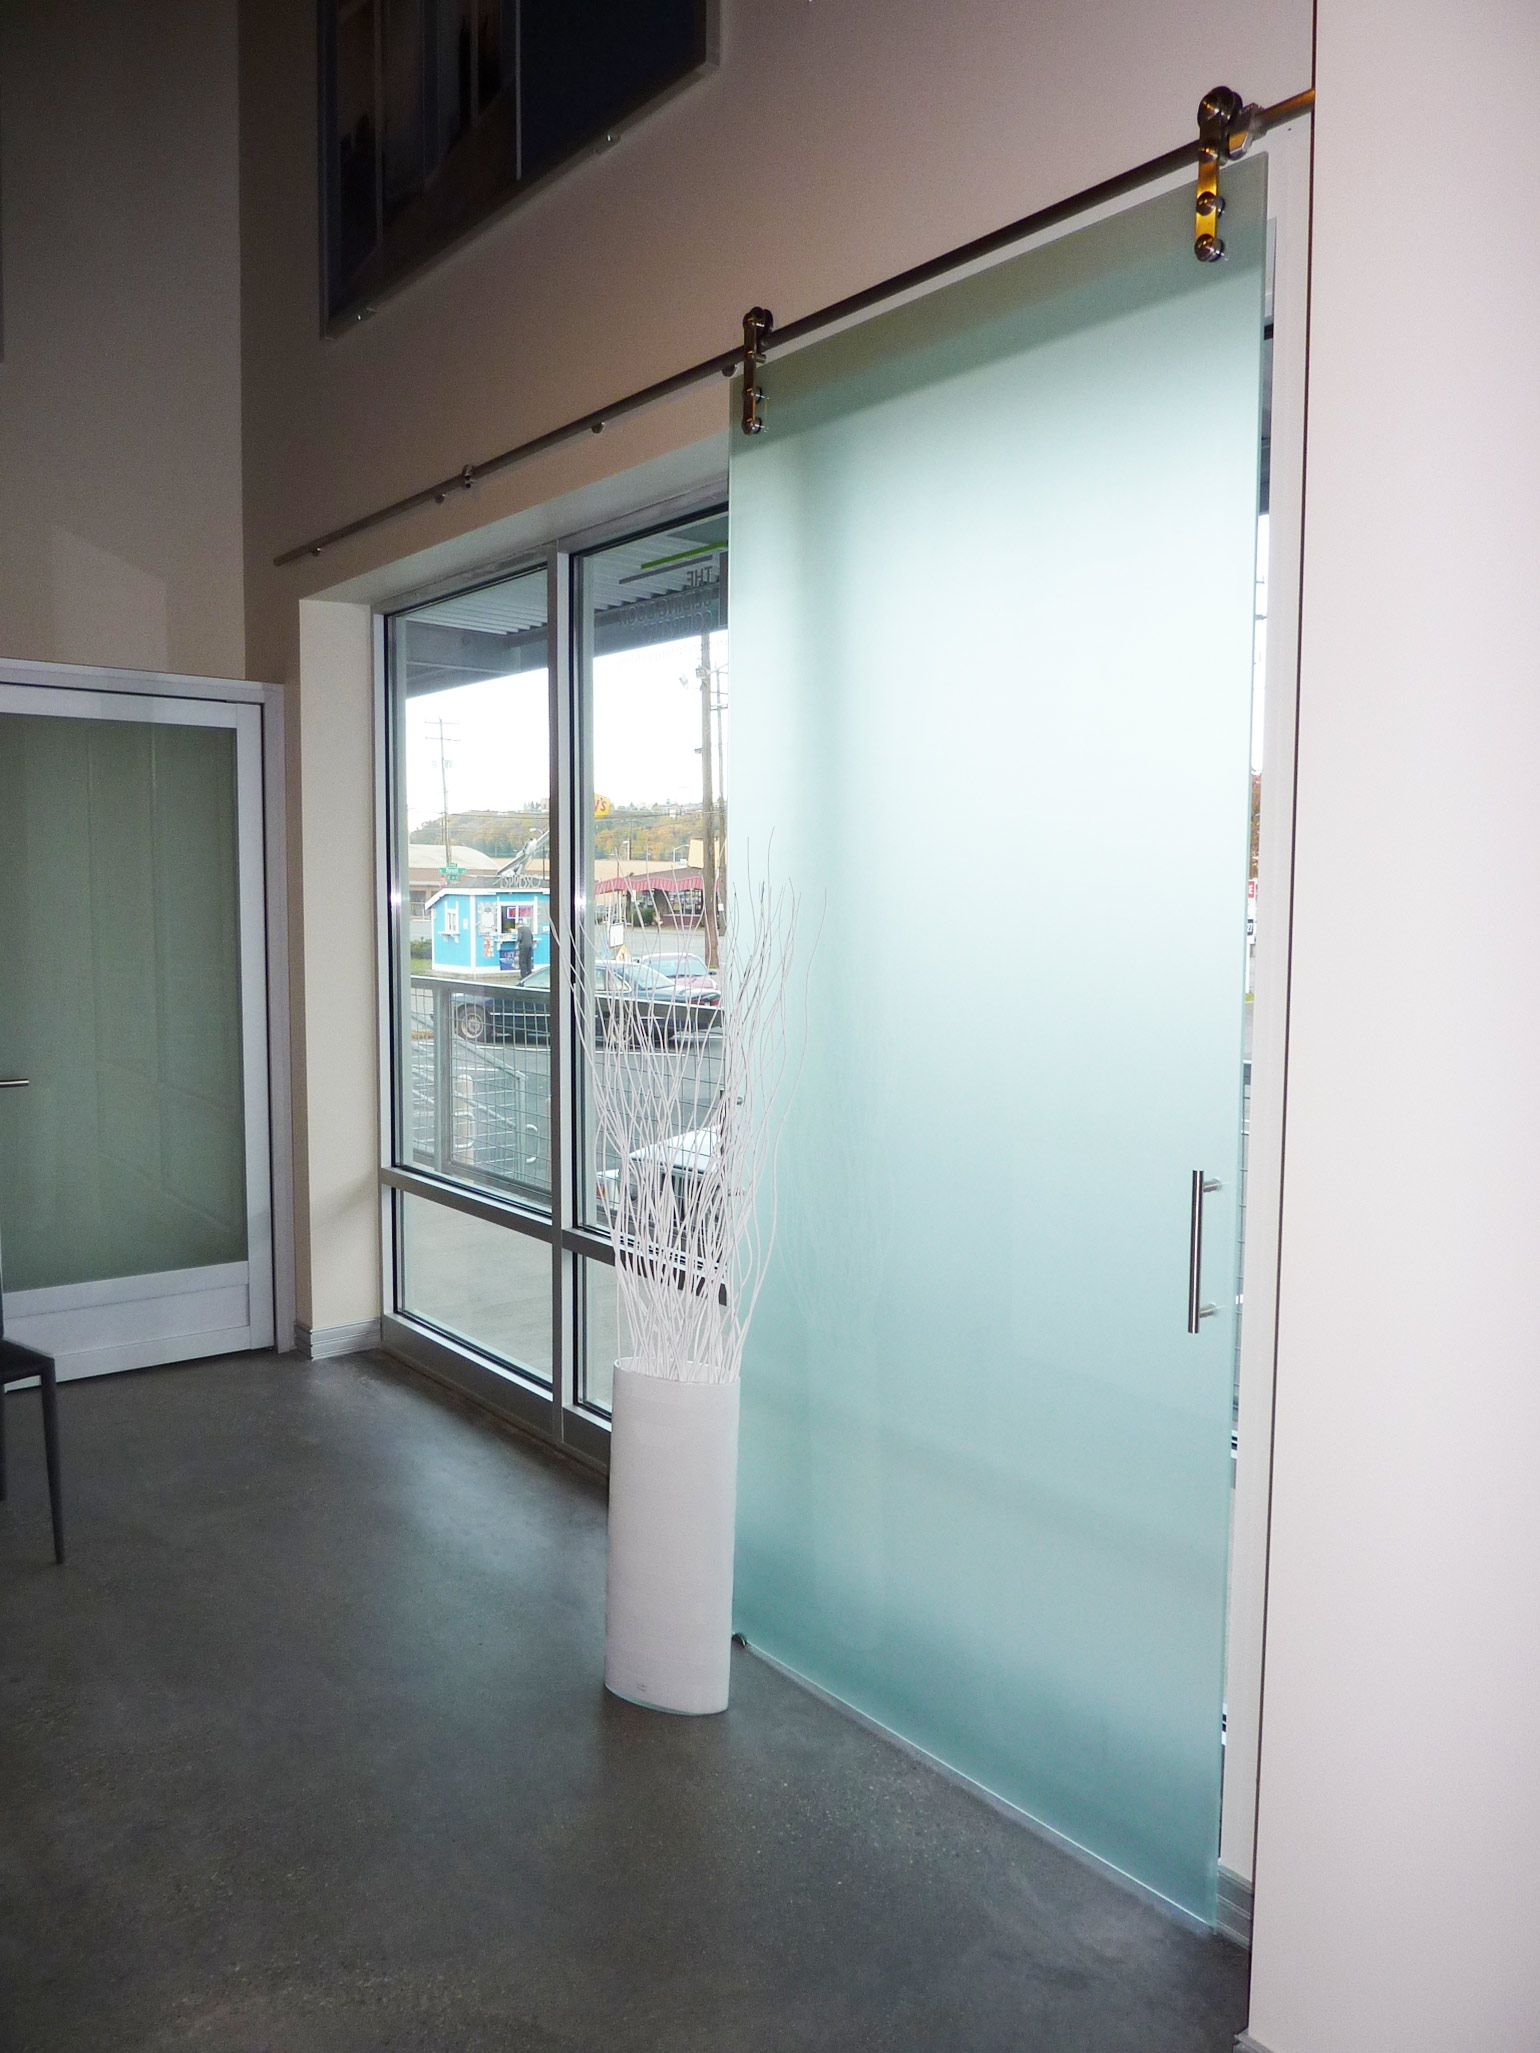 Glass office doors manufacturers - Top Hung Glass Barn Doors Are A Beautiful Addition To Any Home Or Office